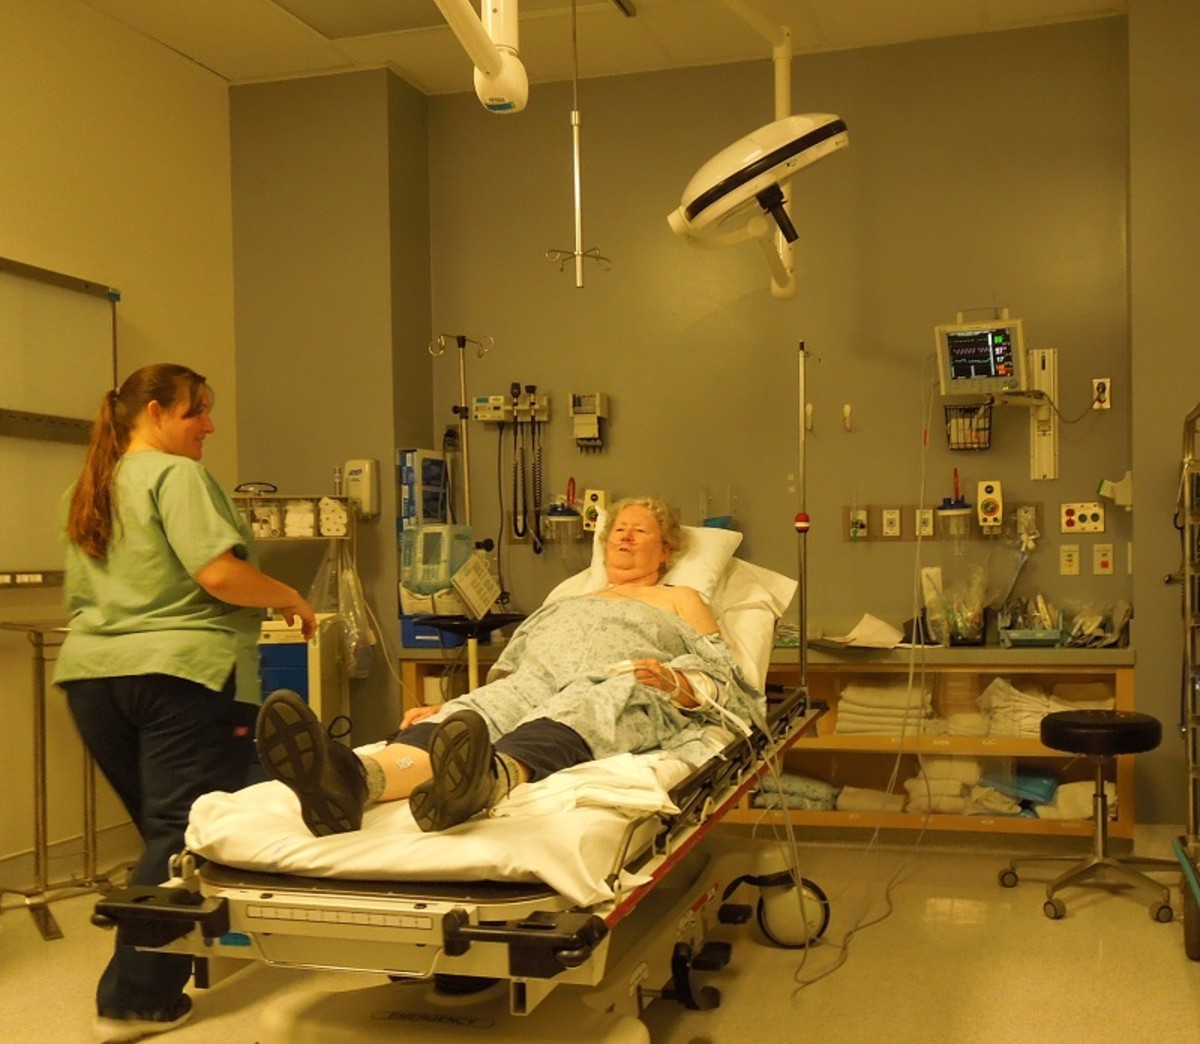 Enjoying care at Twin Cities Hospital emergency room.